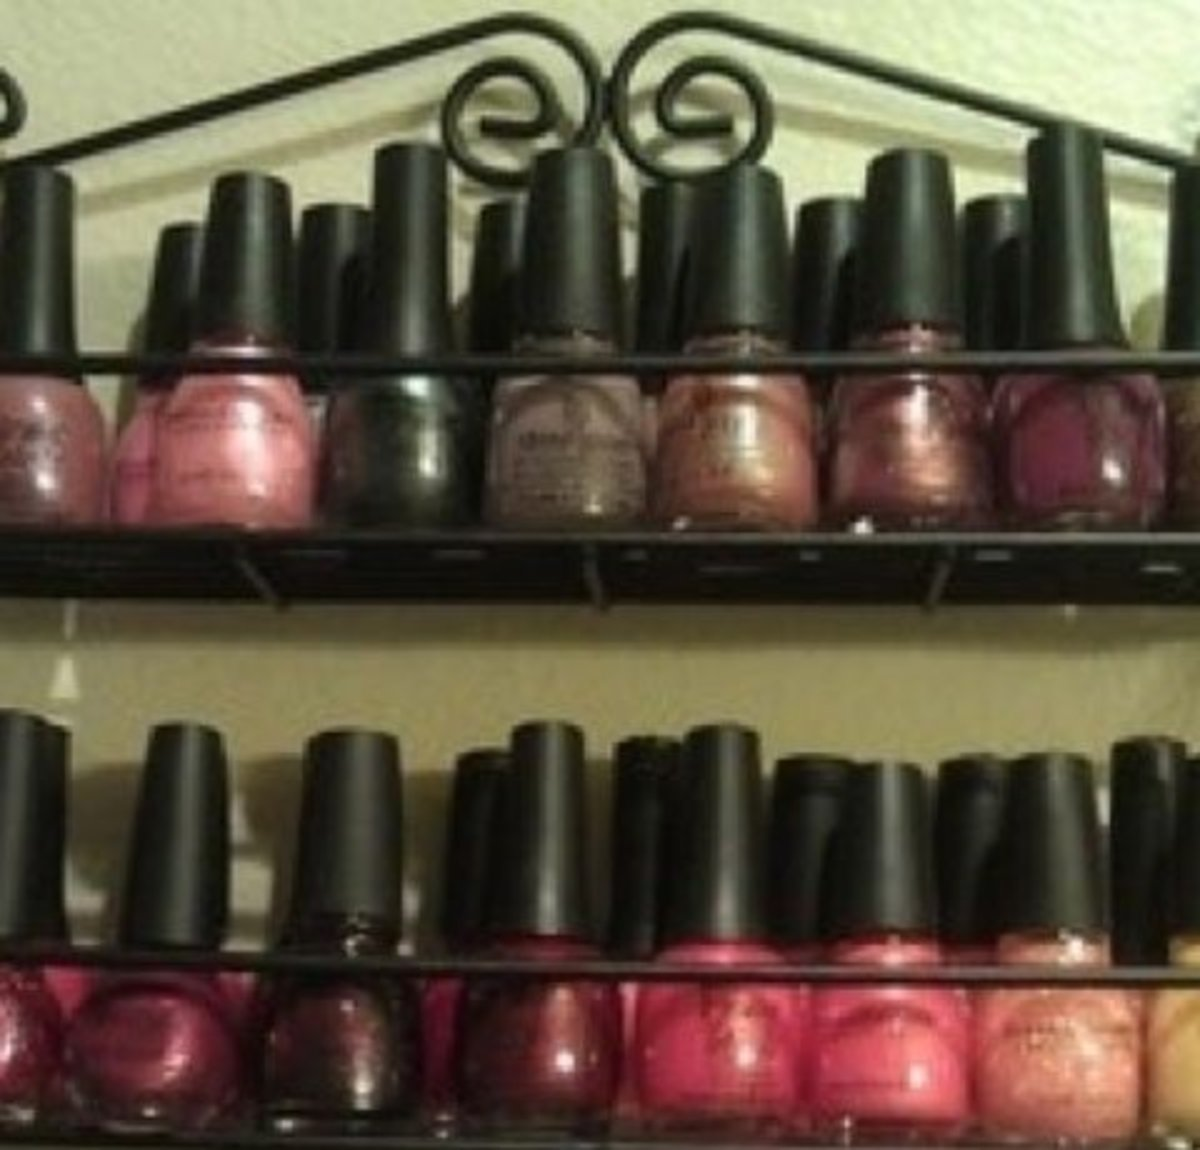 Spice Rack for Nail Varnish | DIY Makeup Organization Ideas